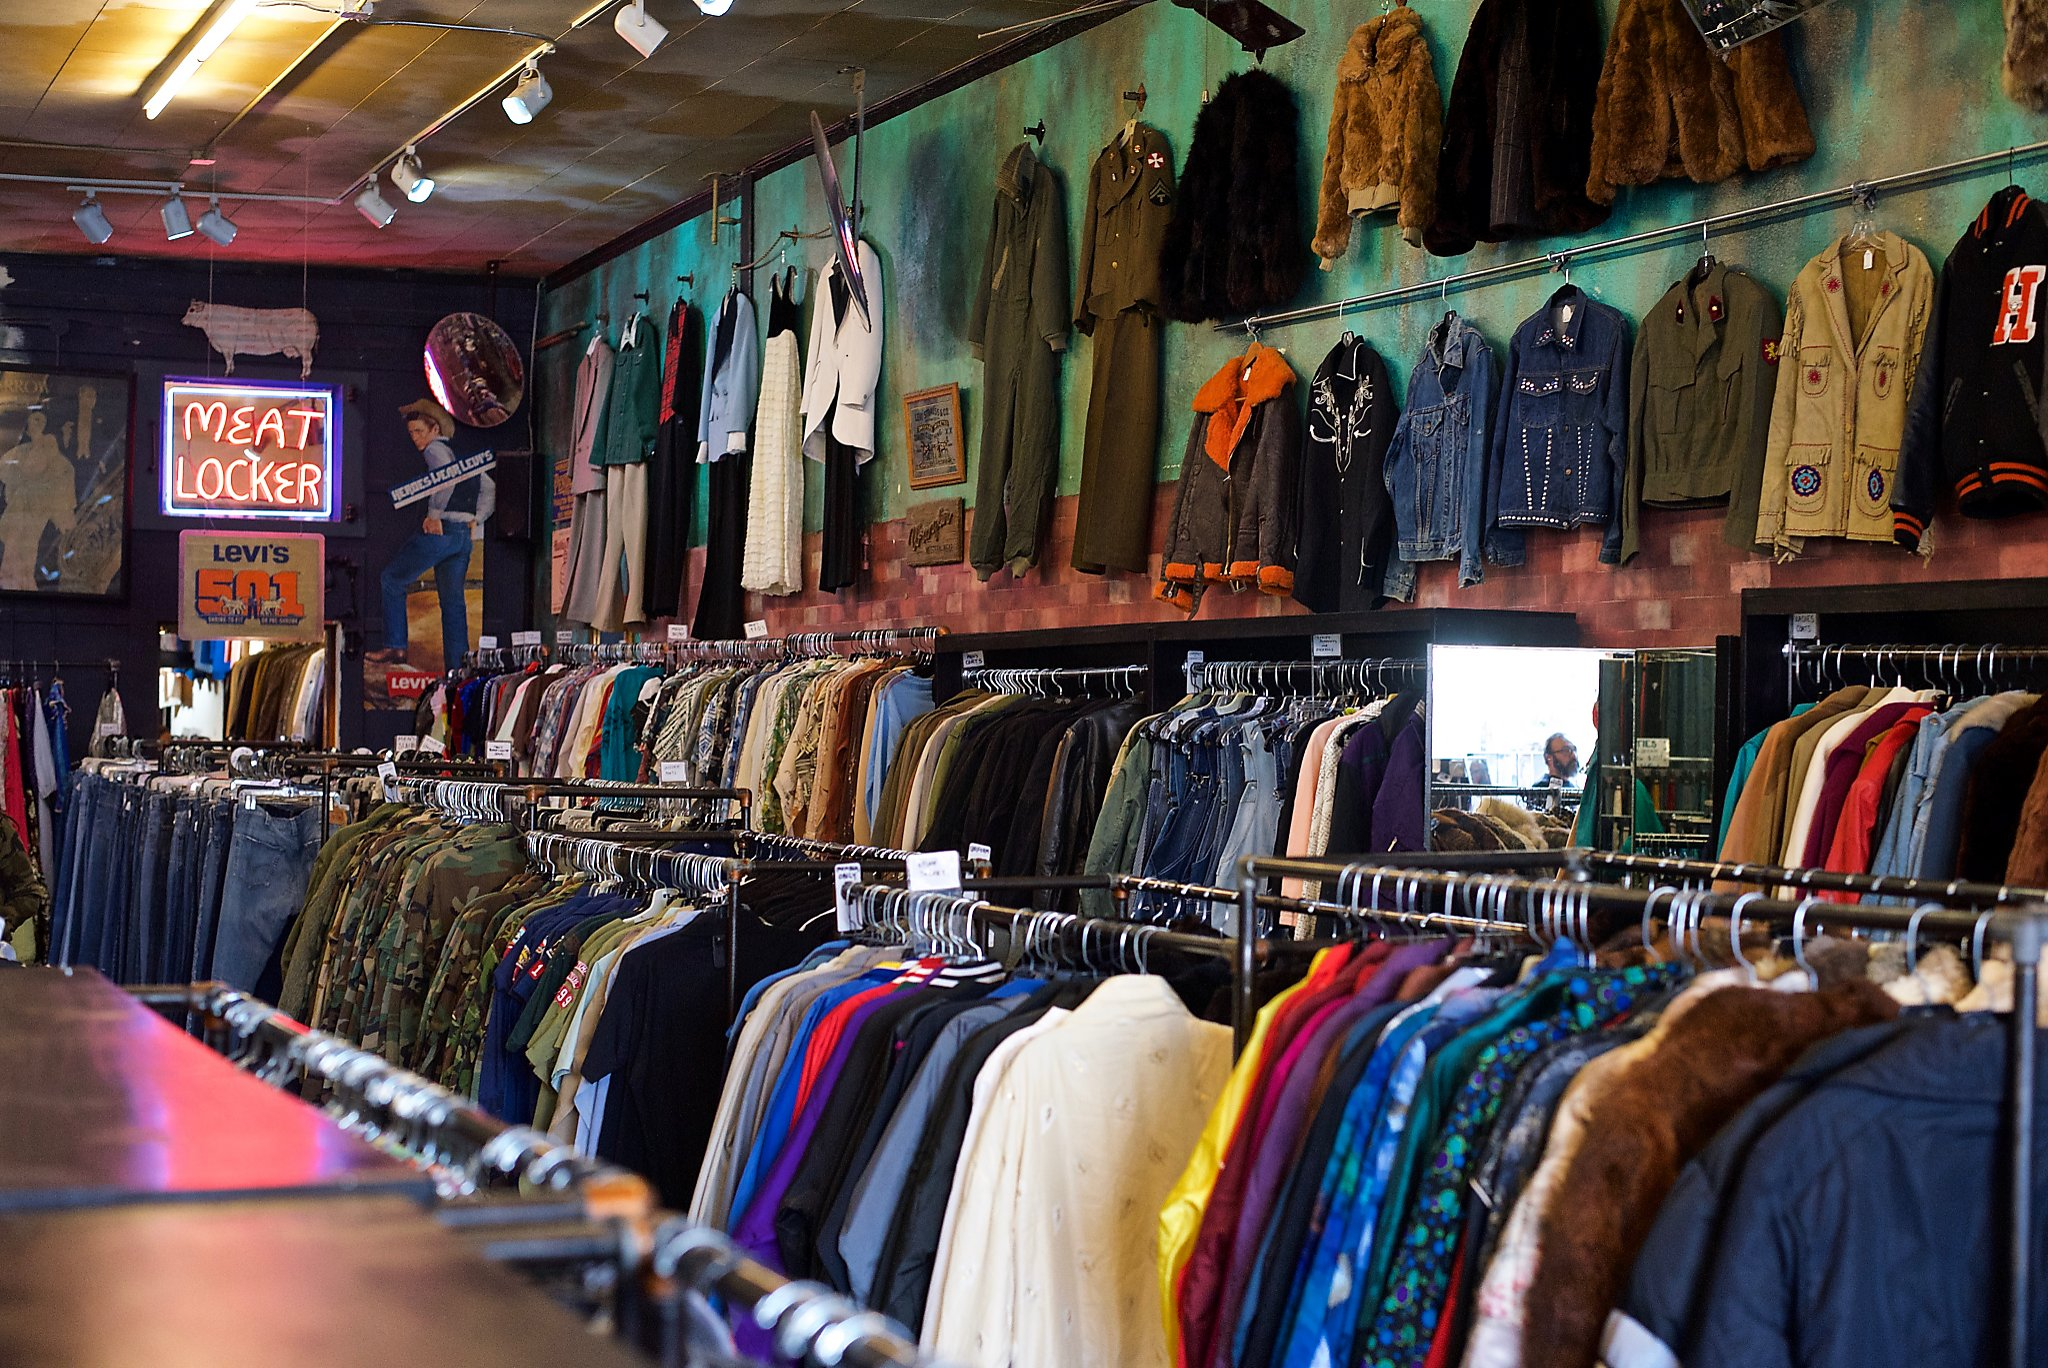 498cd5bb185 Six standout secondhand stores for men s clothing - SFChronicle.com